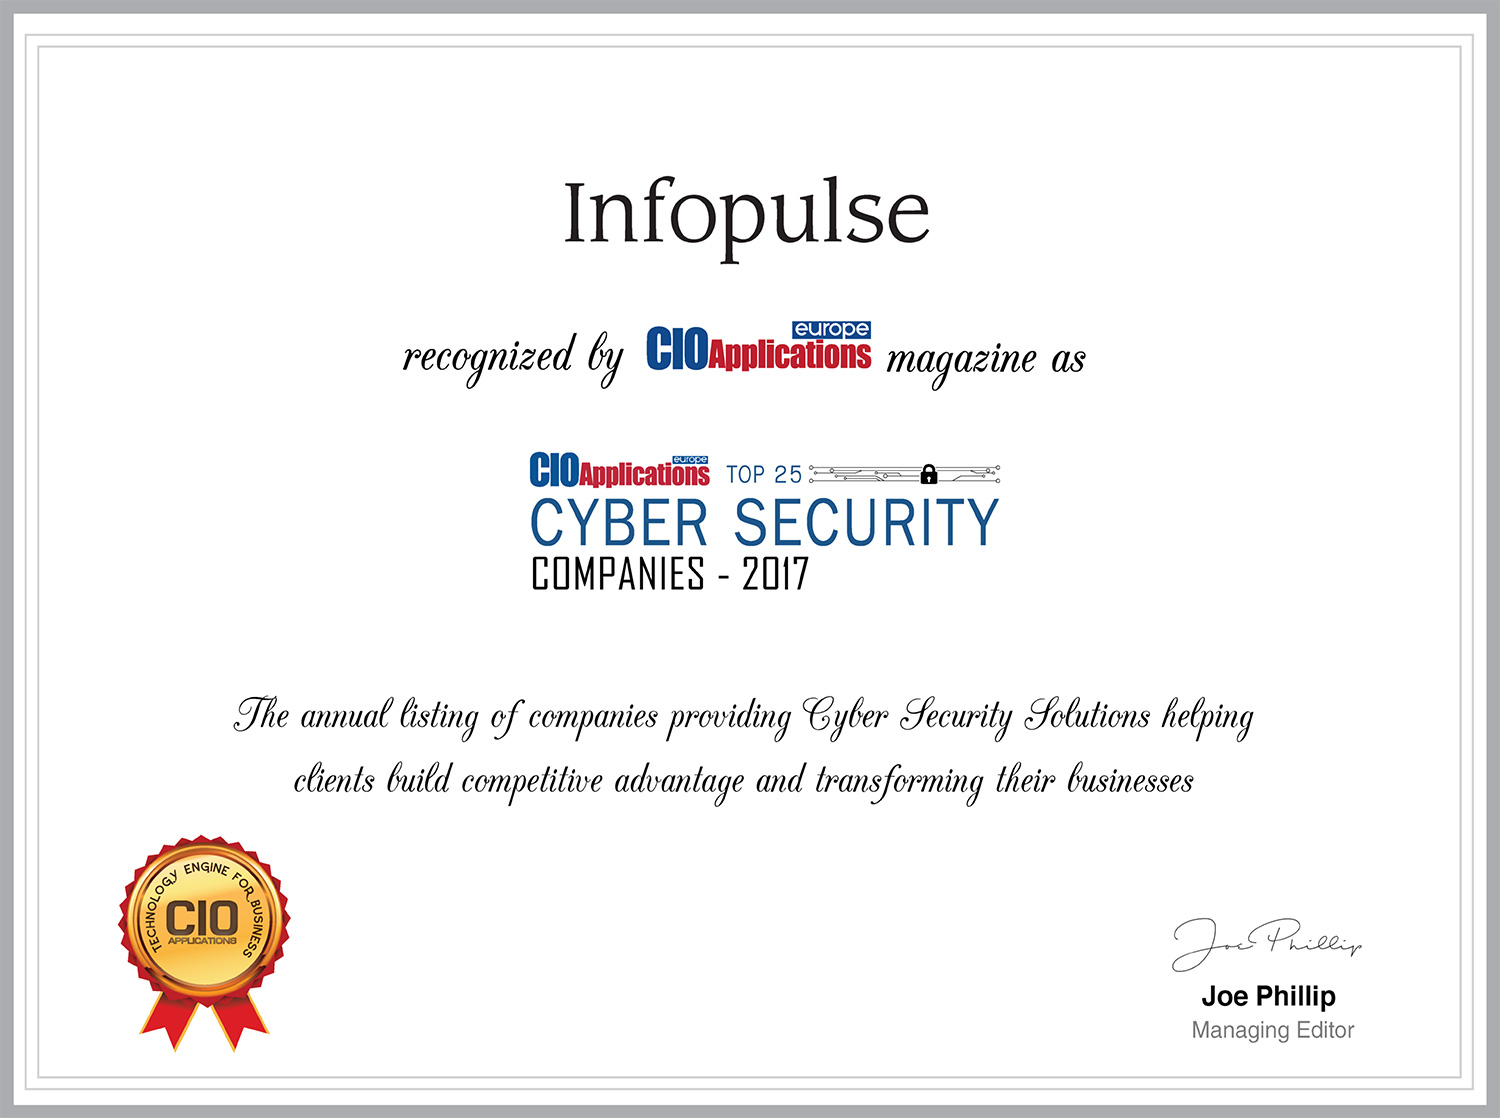 Infopulse Recognized Among Top 25 Cyber Security Companies in Europe - Infopulse - 006655